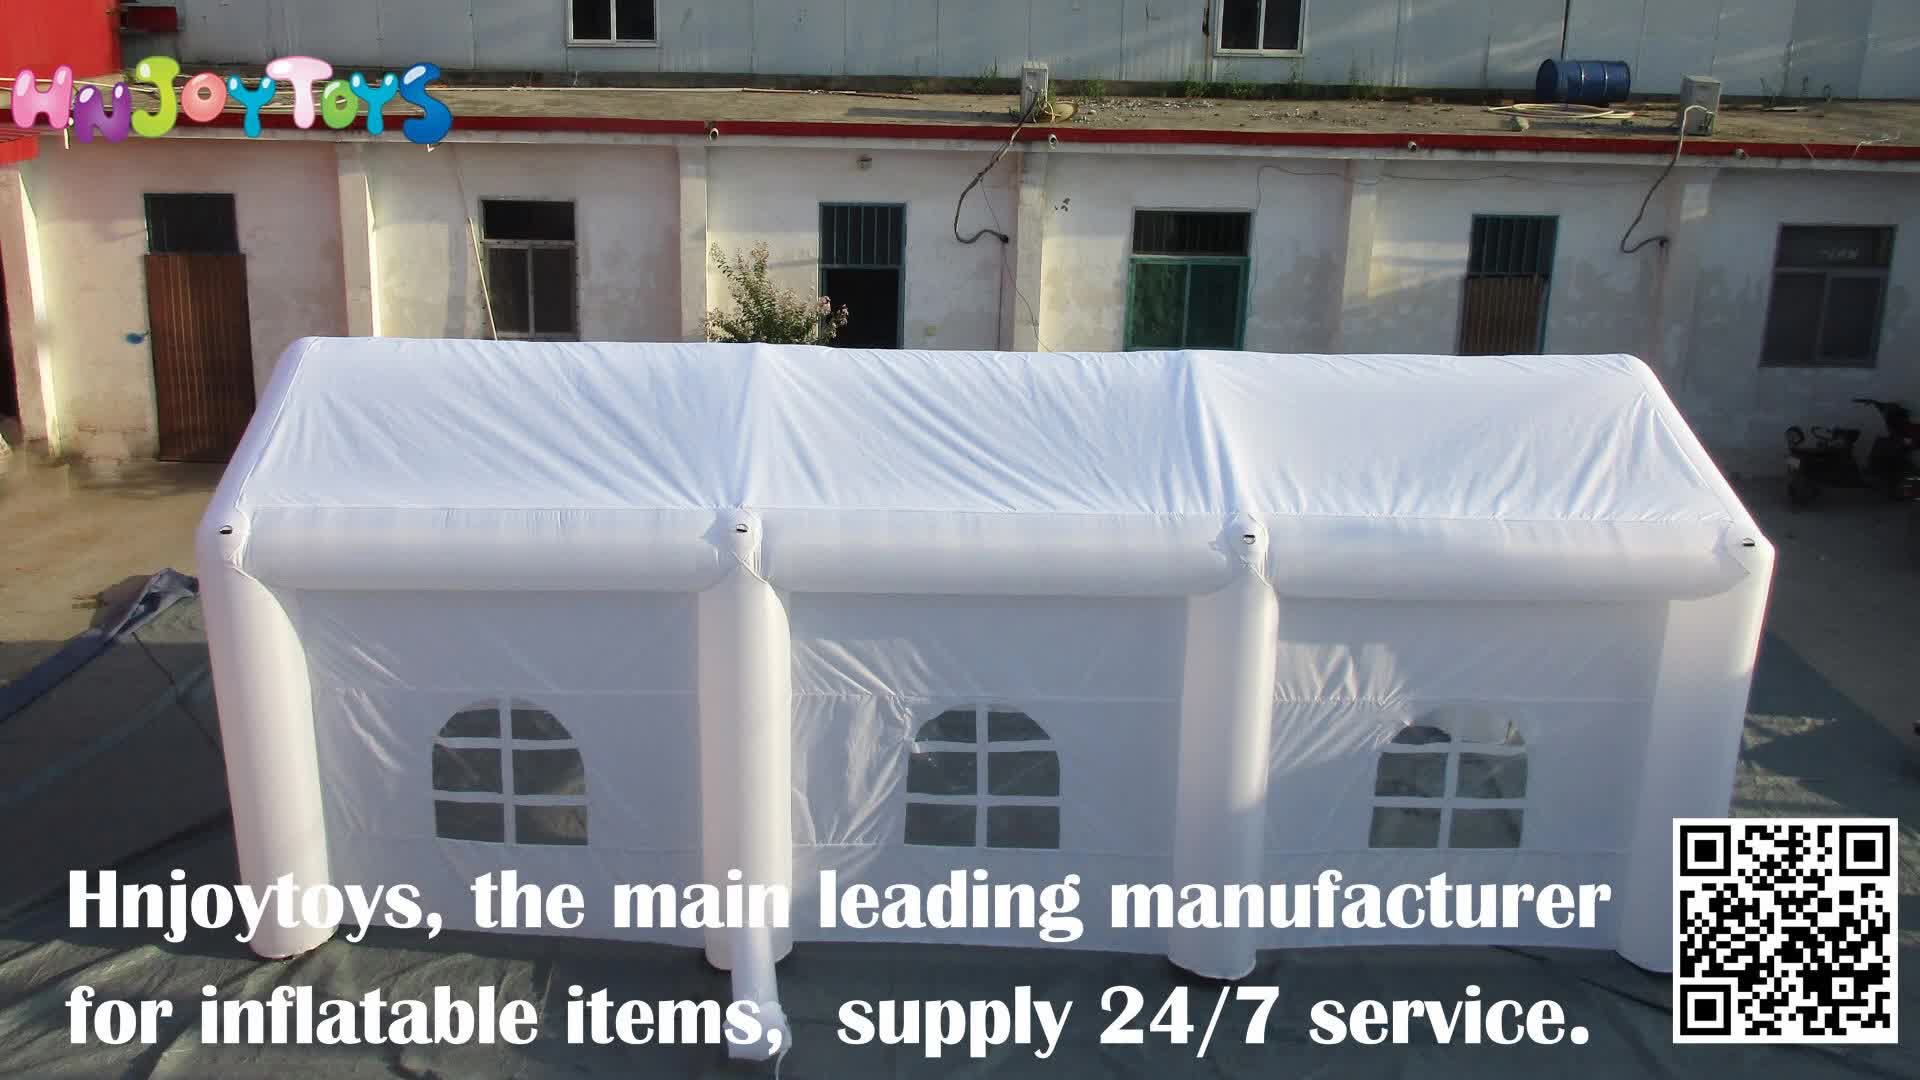 shipping by air, sea, national express,to your door services, arrive within 7 days  inflatable tent